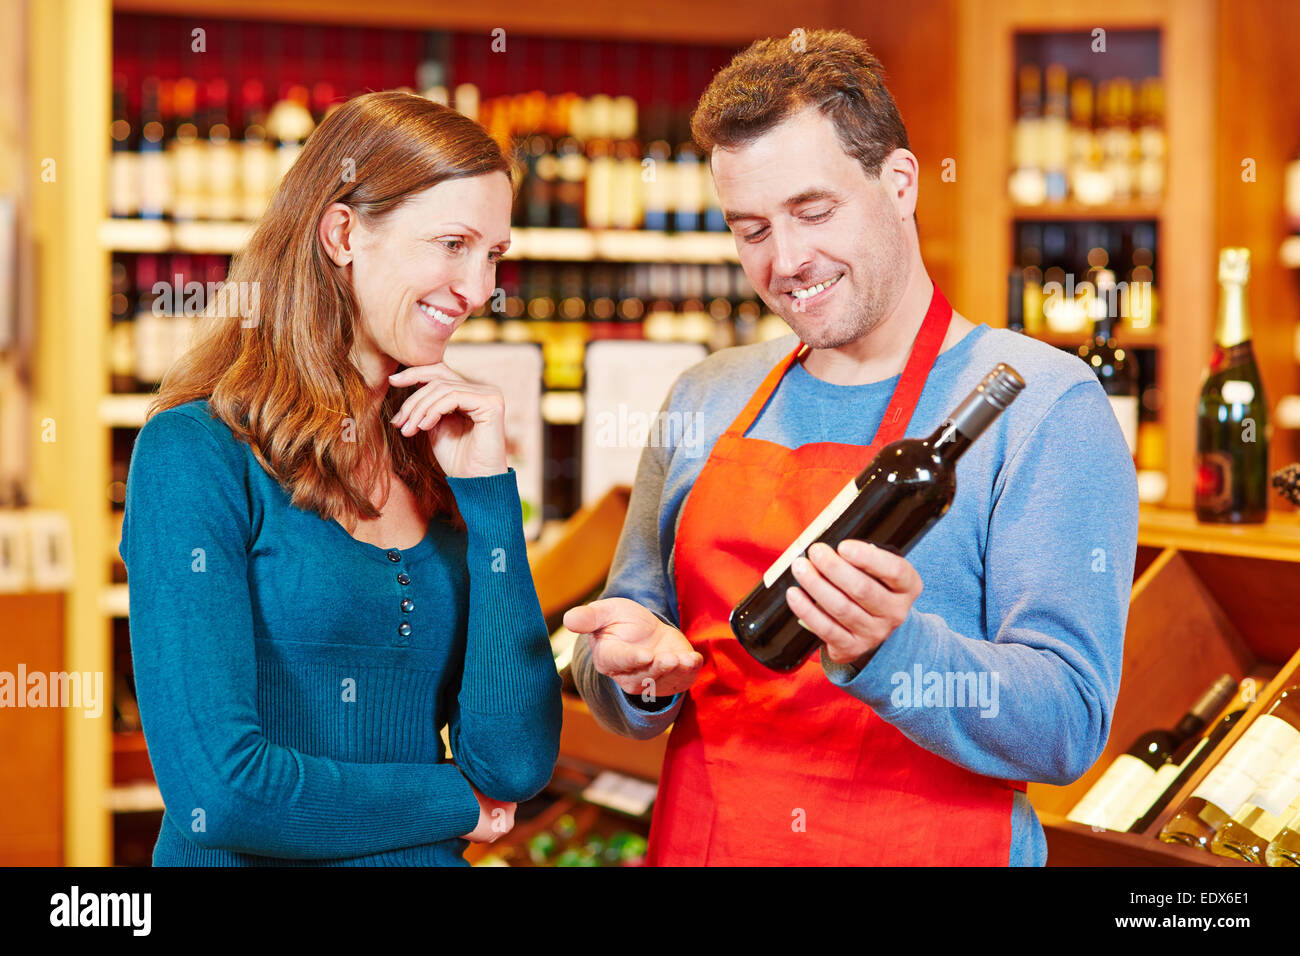 Sommelier in wine store giving woman recommendation for bottle of wine - Stock Image